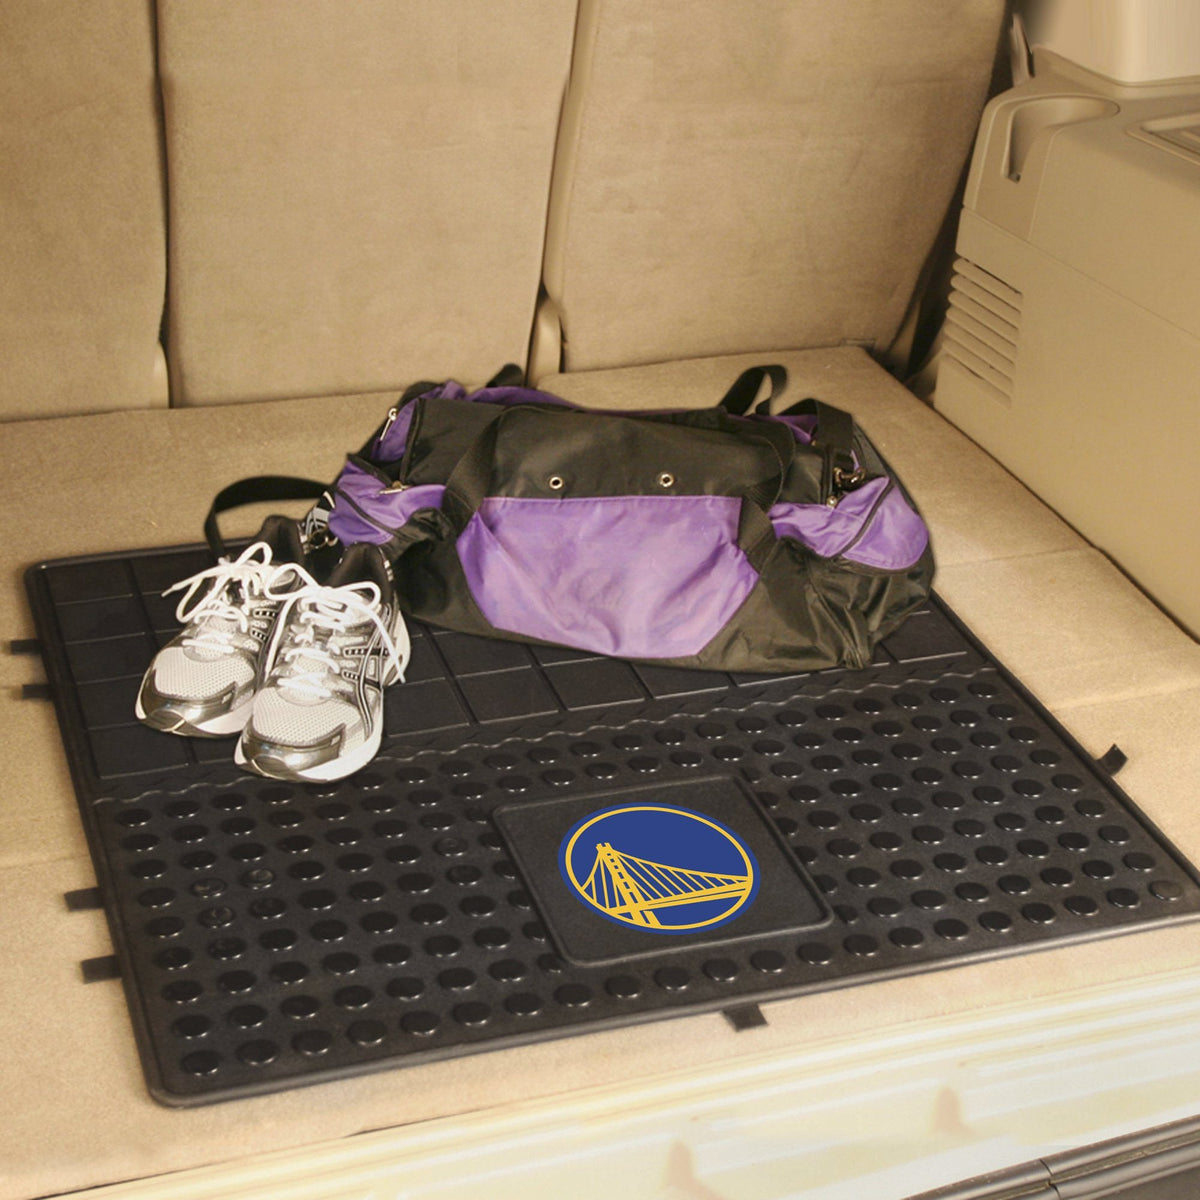 NBA - Heavy Duty Vinyl Cargo Mat NBA Mats, Trunk Mats, Heavy Duty Vinyl Cargo Mat, NBA, Auto Fan Mats Golden State Warriors